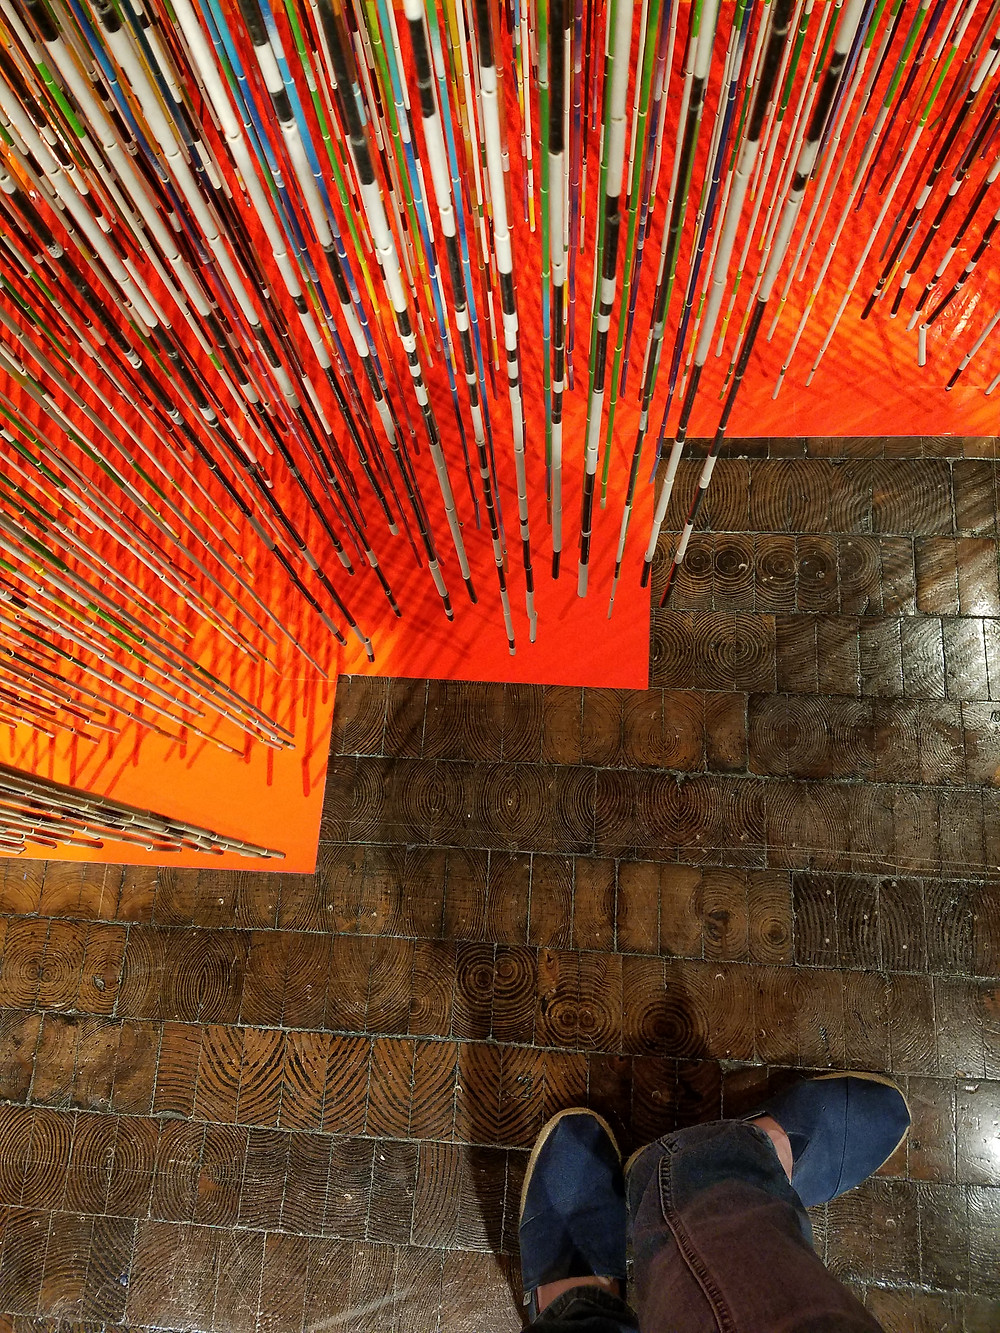 The Frist Art Museum end grain wood floors at a Nick Cave exhibit Copyright 2018 Marla Baxter Sanderson